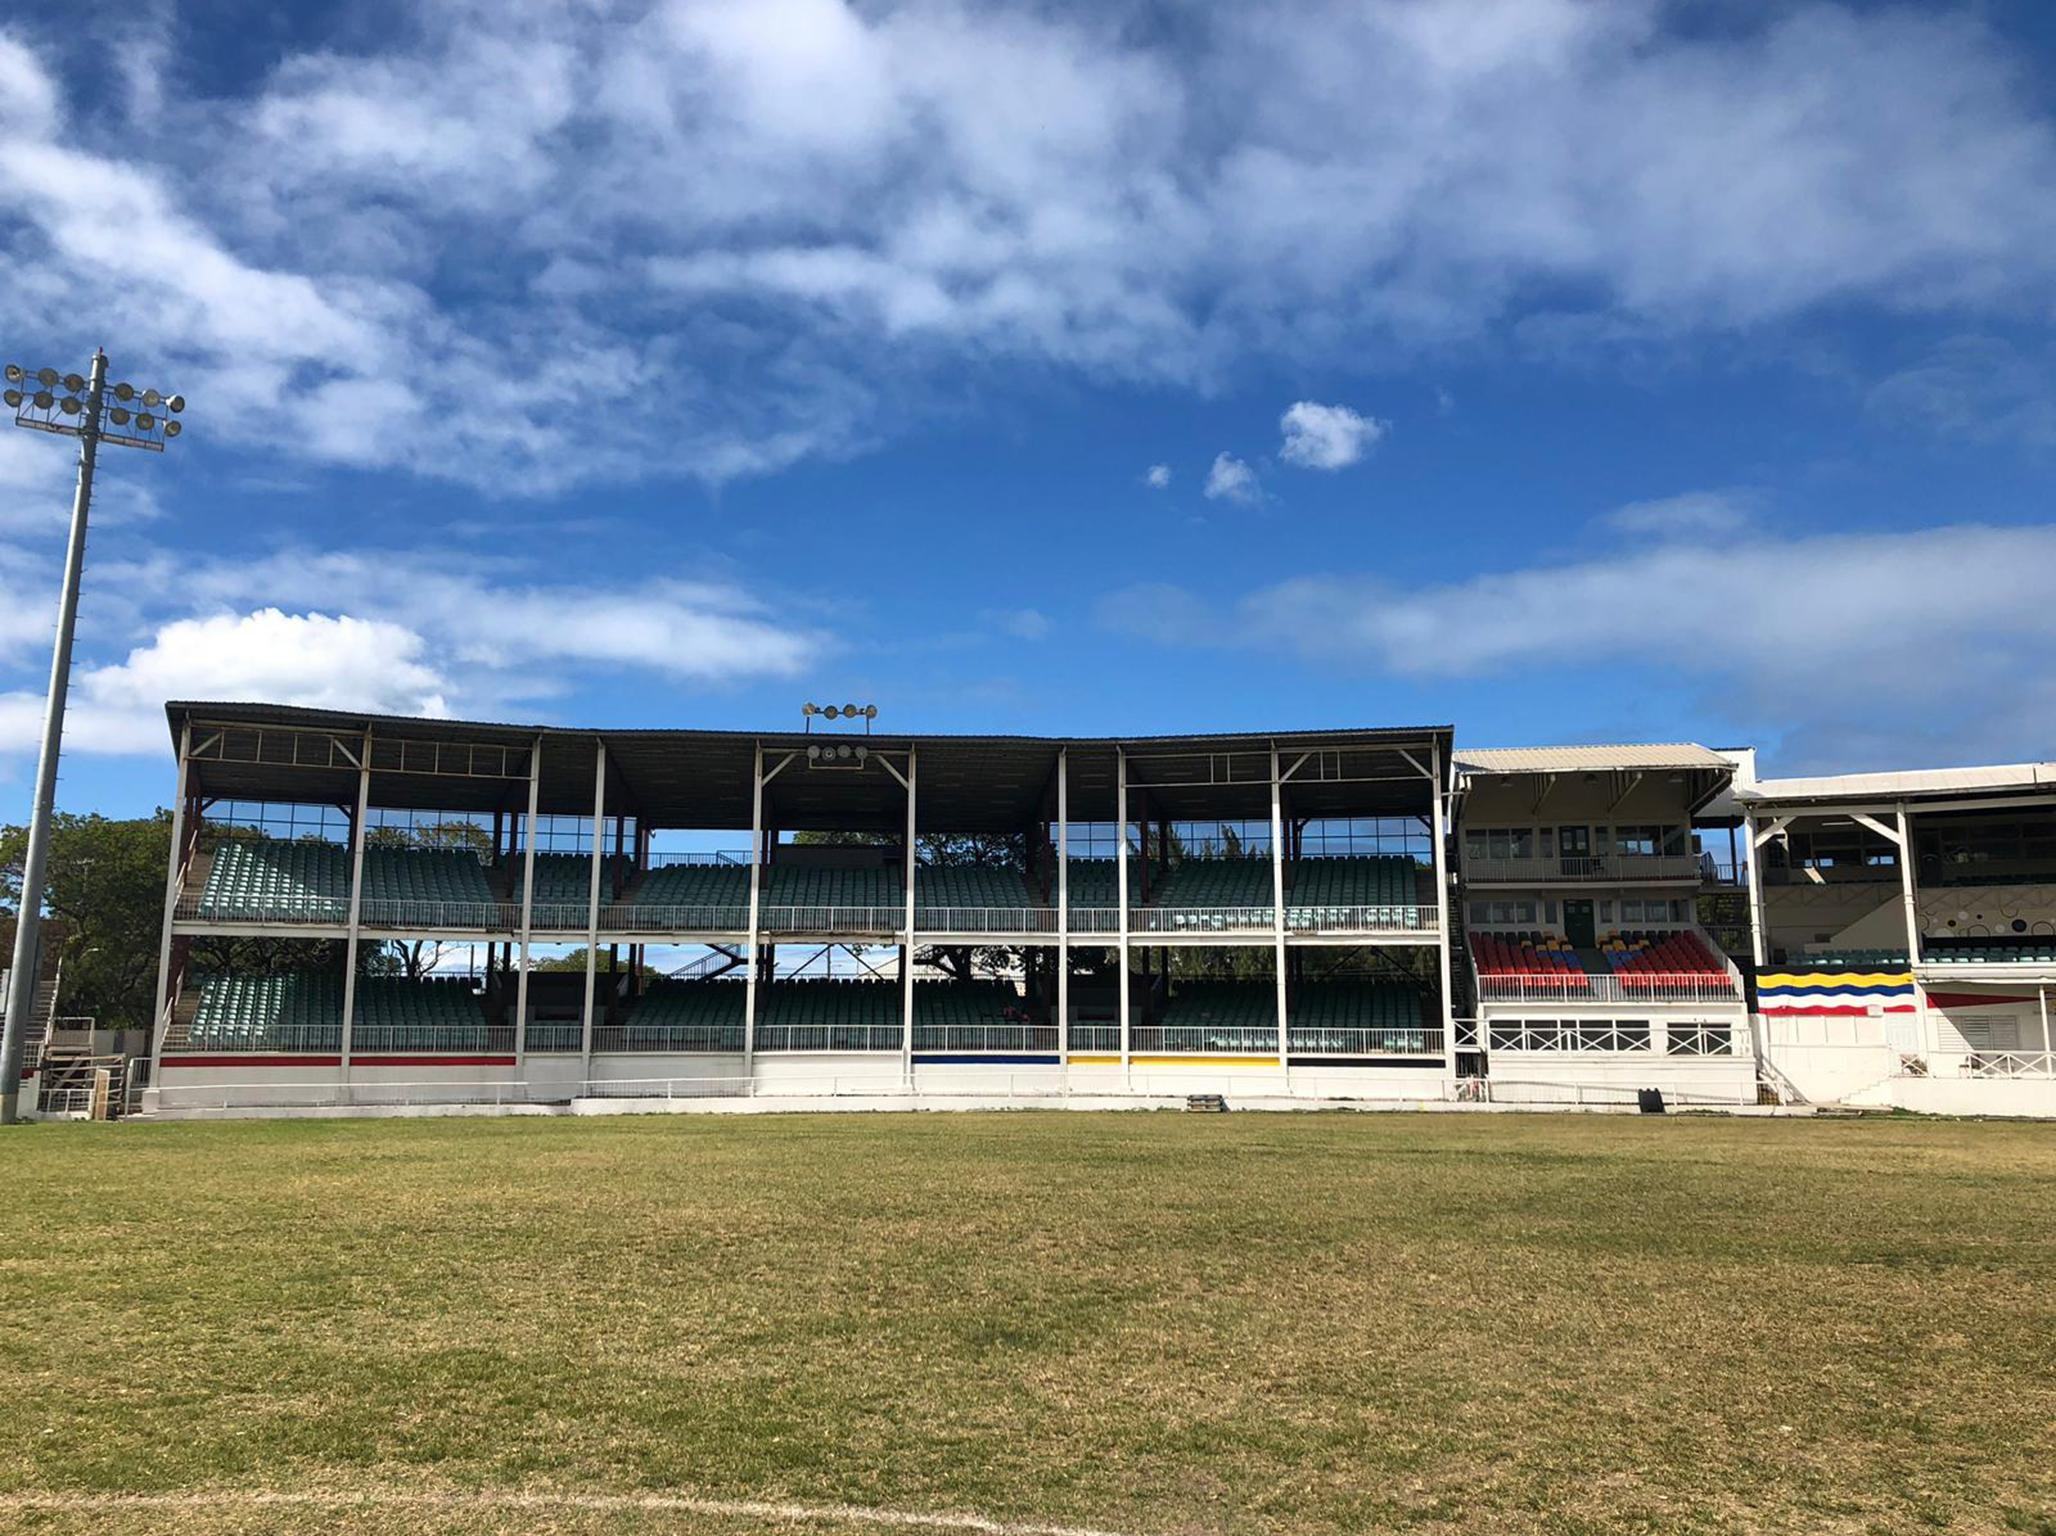 Antigua's Recreation Ground remains a dusty time capsule of